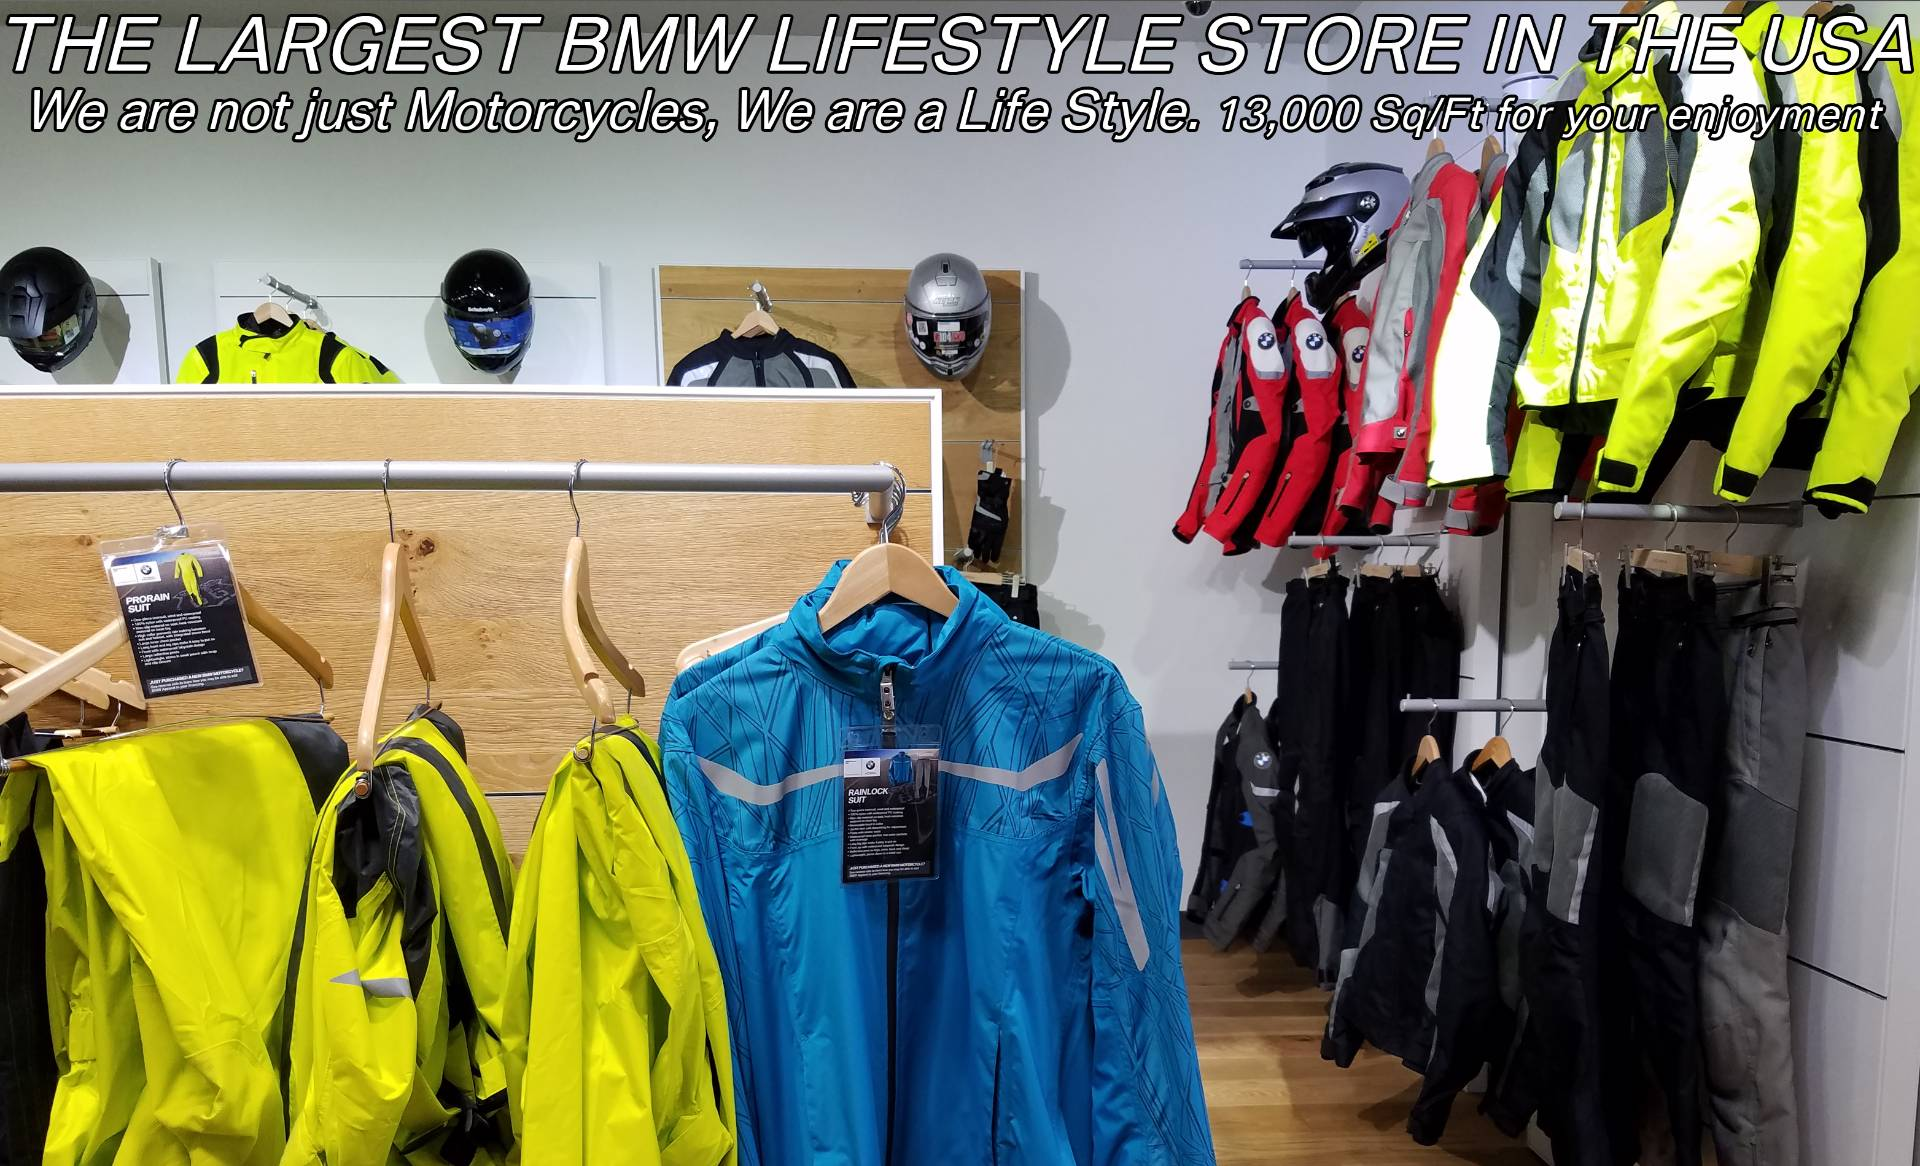 New 2019 BMW F 750 GS for sale, BMW F 750GS for sale, BMW Motorcycle F750GS, new BMW 750, Dual, BMW - Photo 34